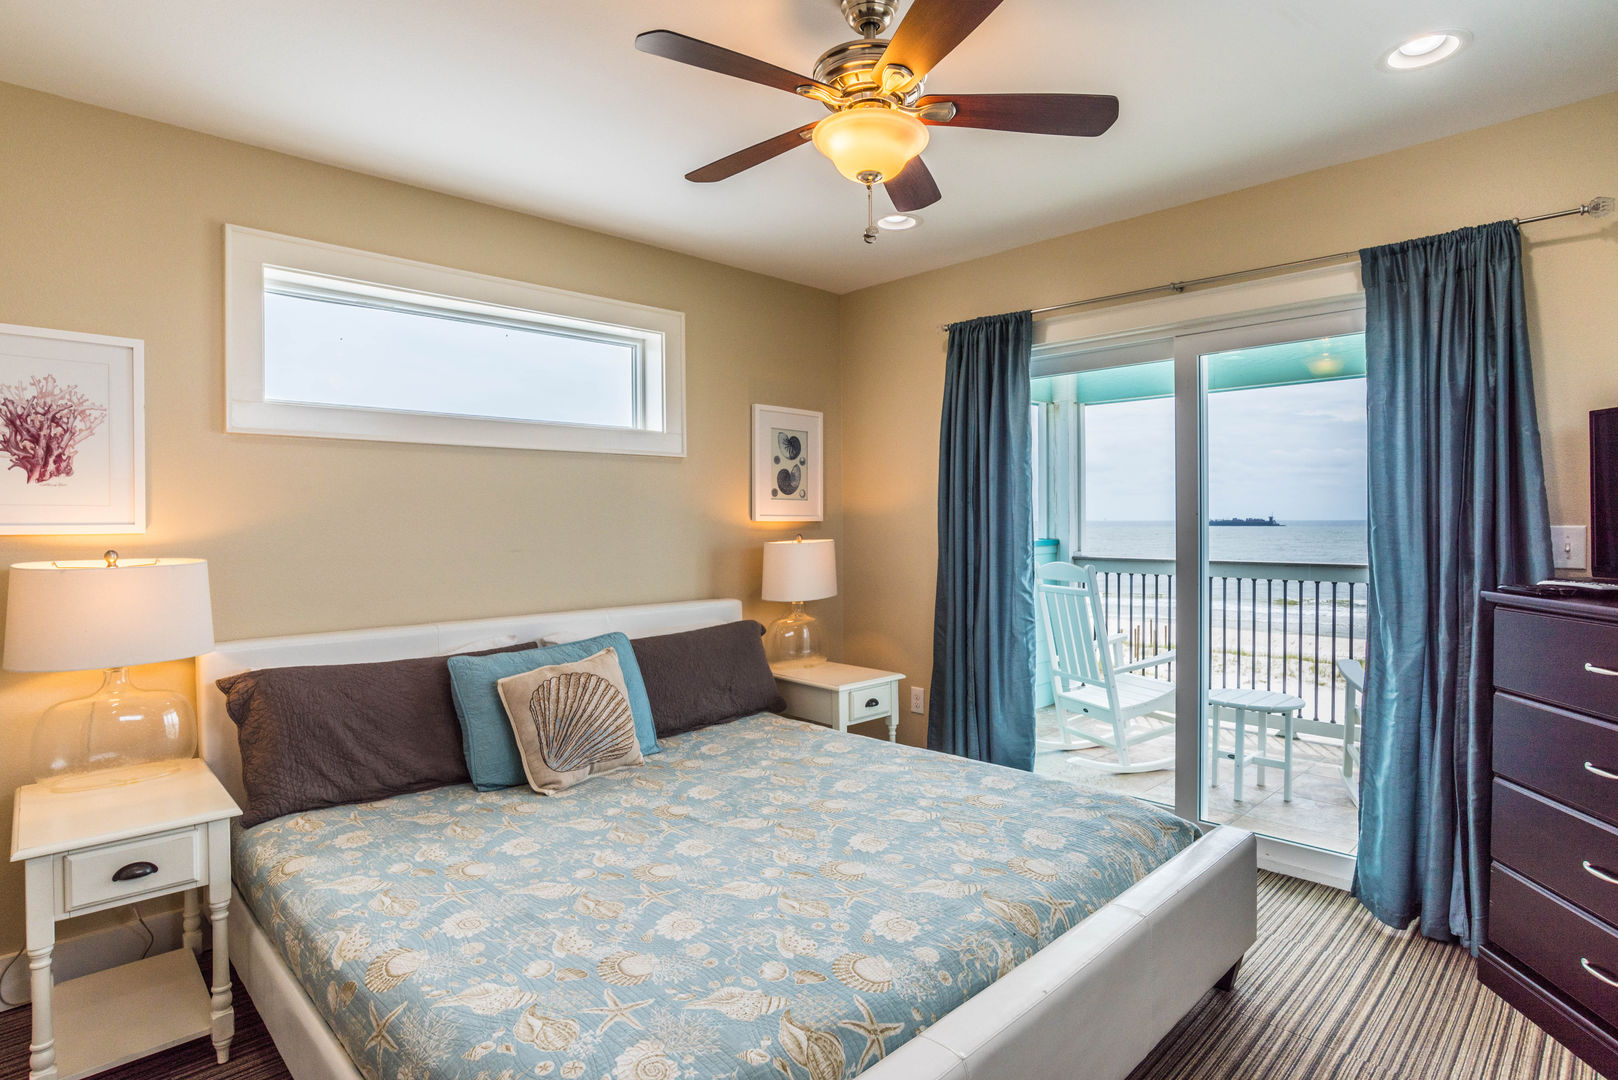 Additional Guest Room with Private Access to Patio